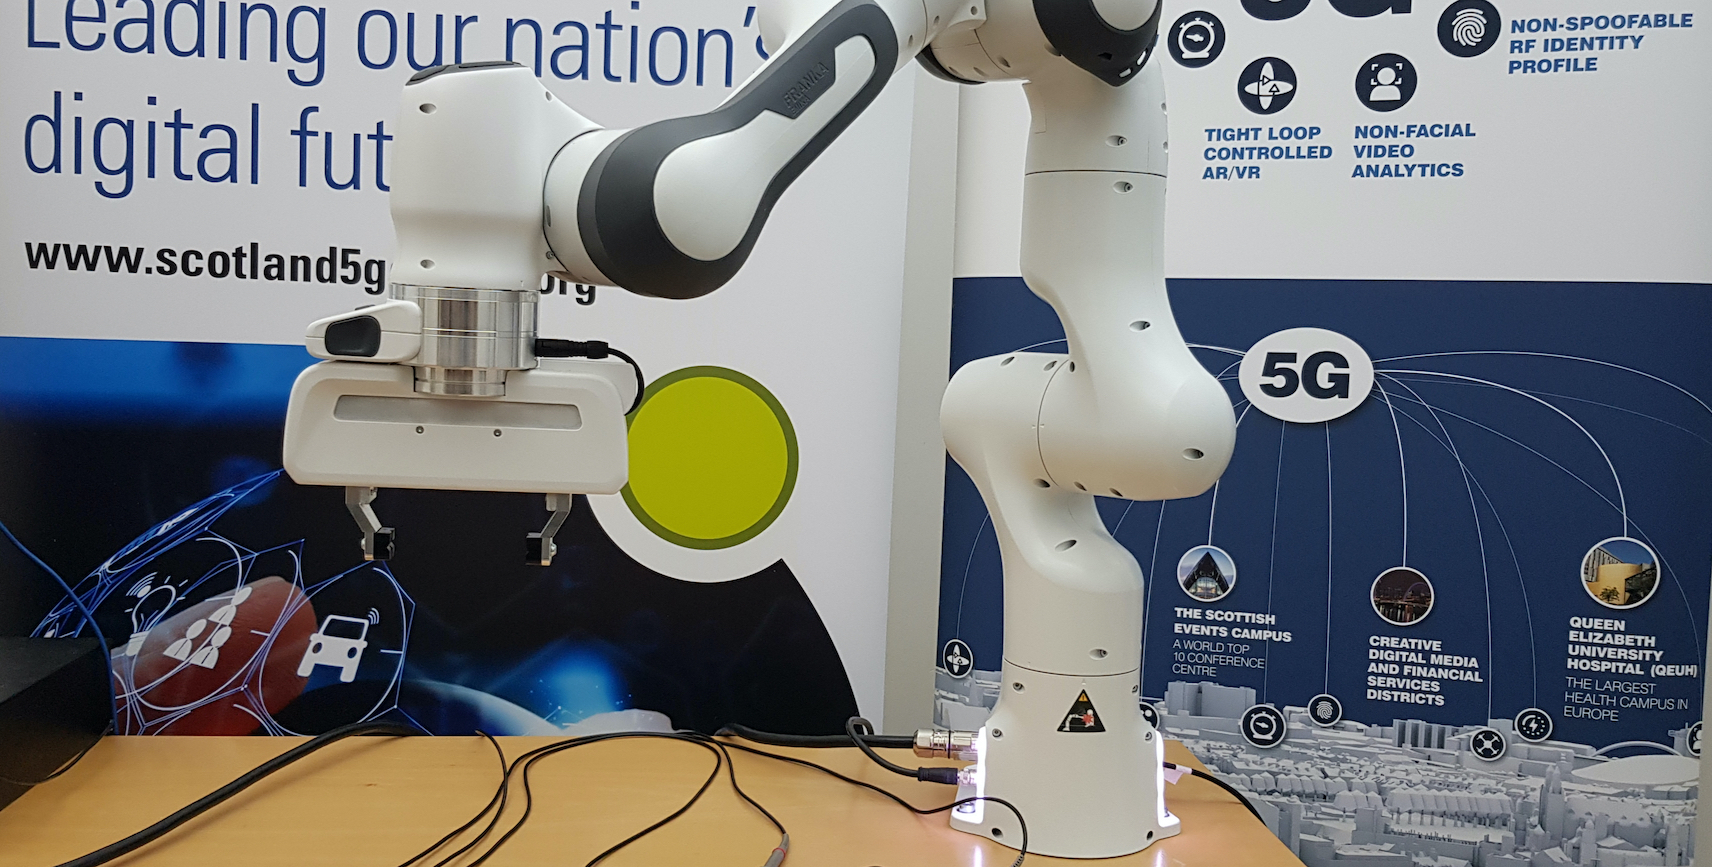 University of Glasgow Robot arm supports social distanced lab work